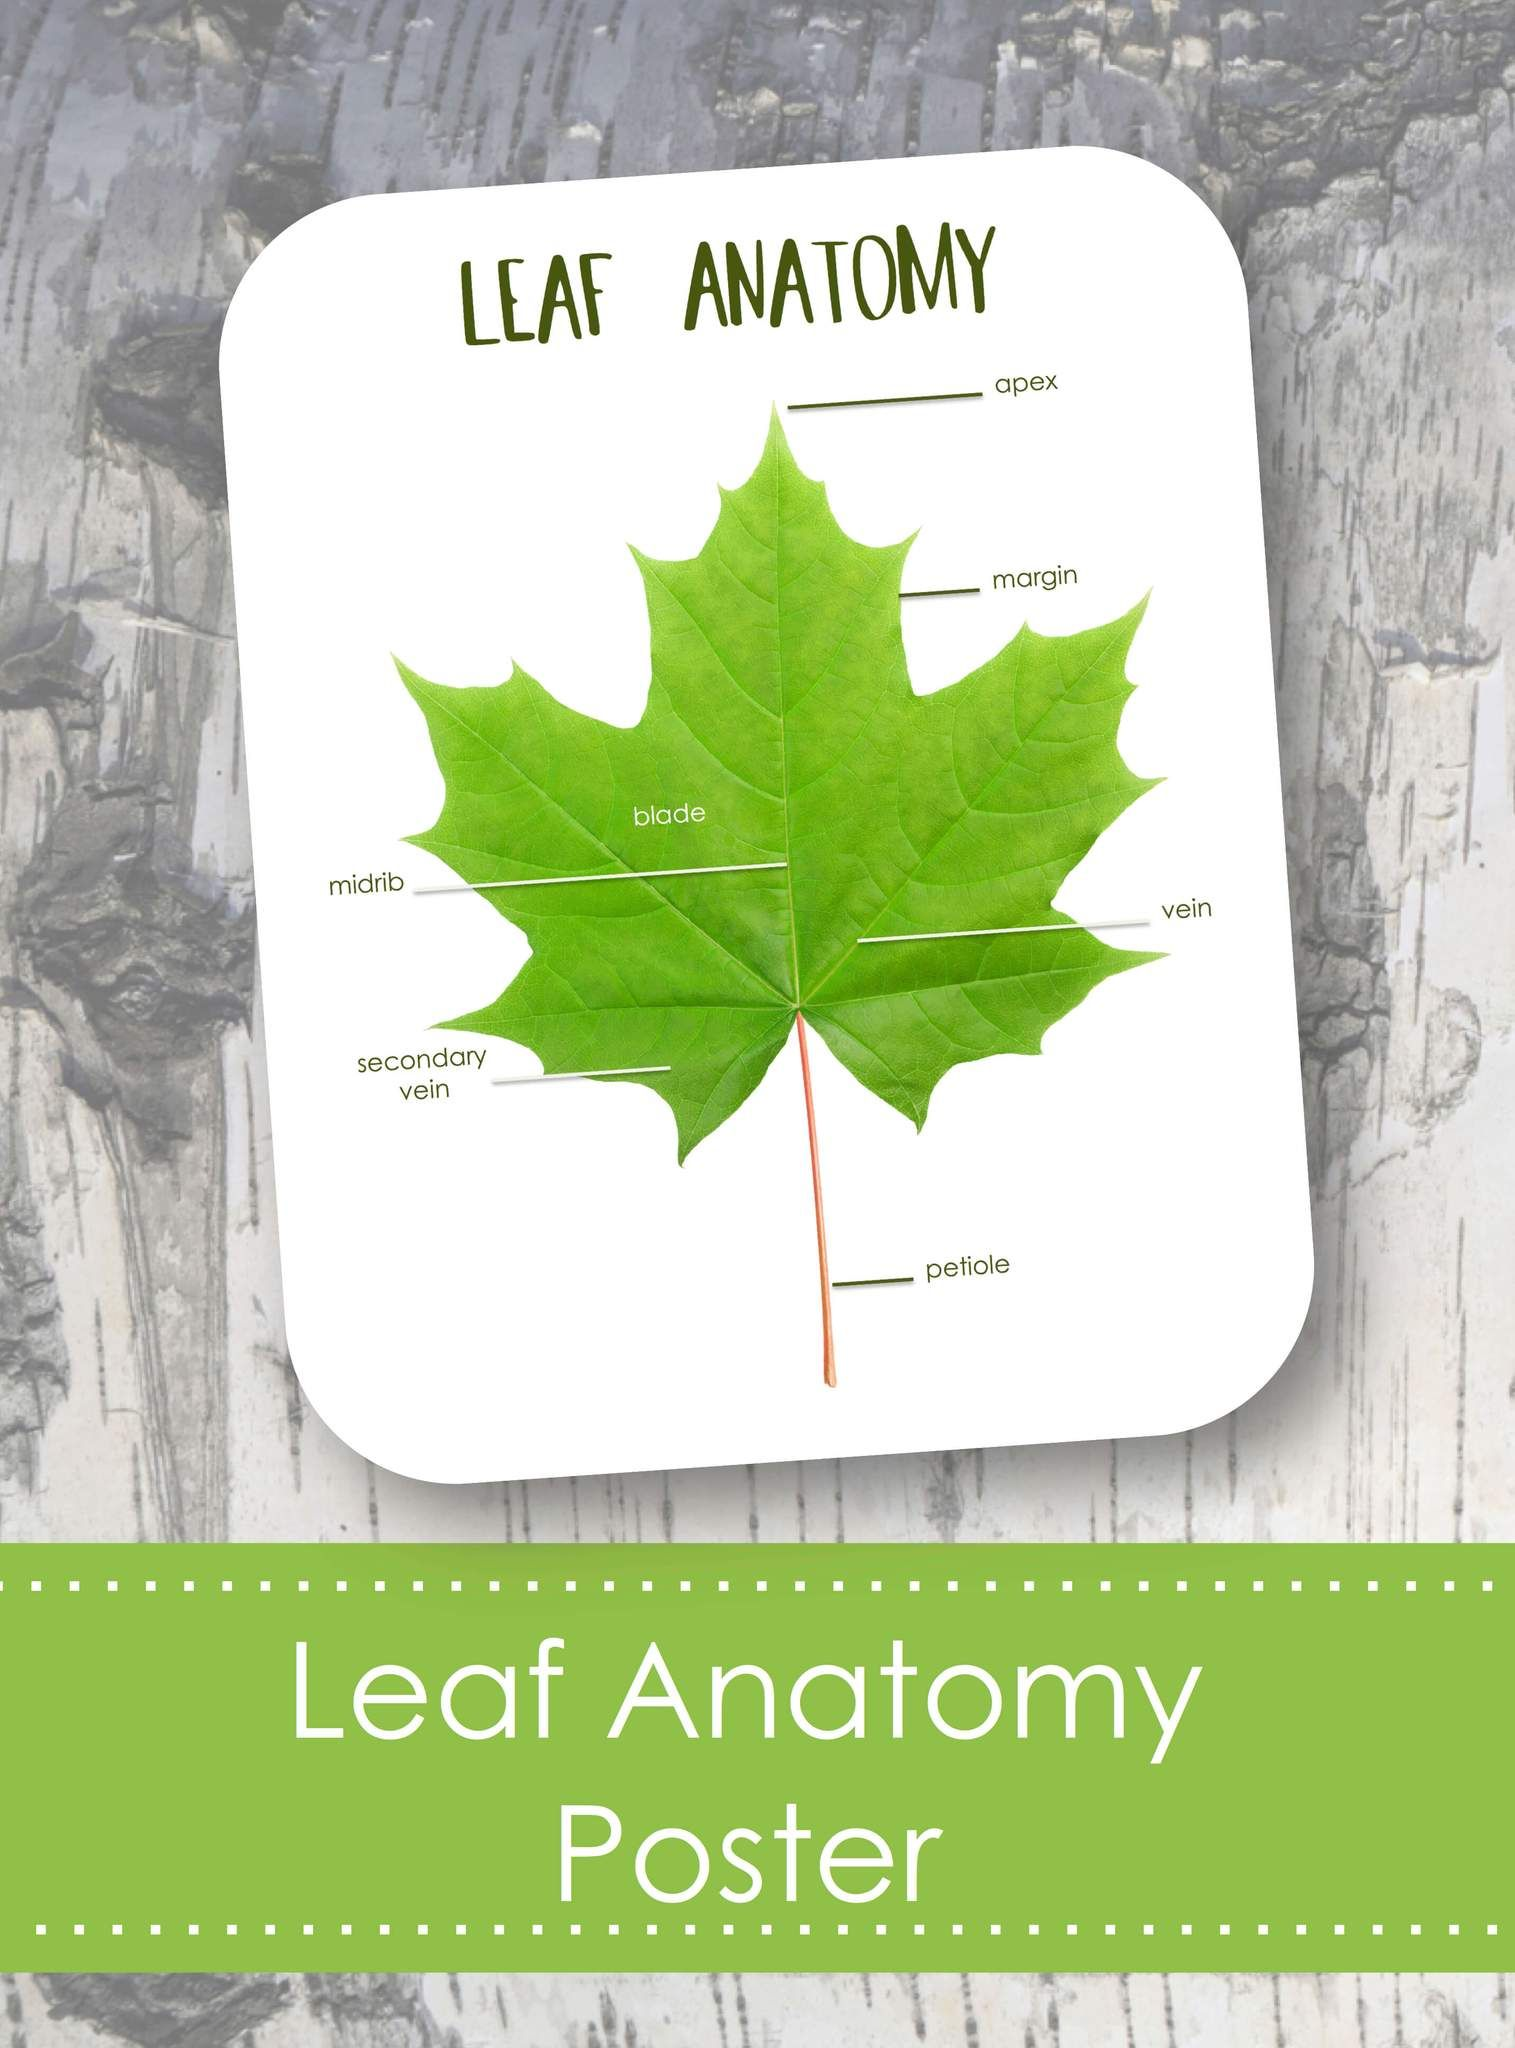 Leaf Anatomy Poster | Poster, Anatomy, Montessori science